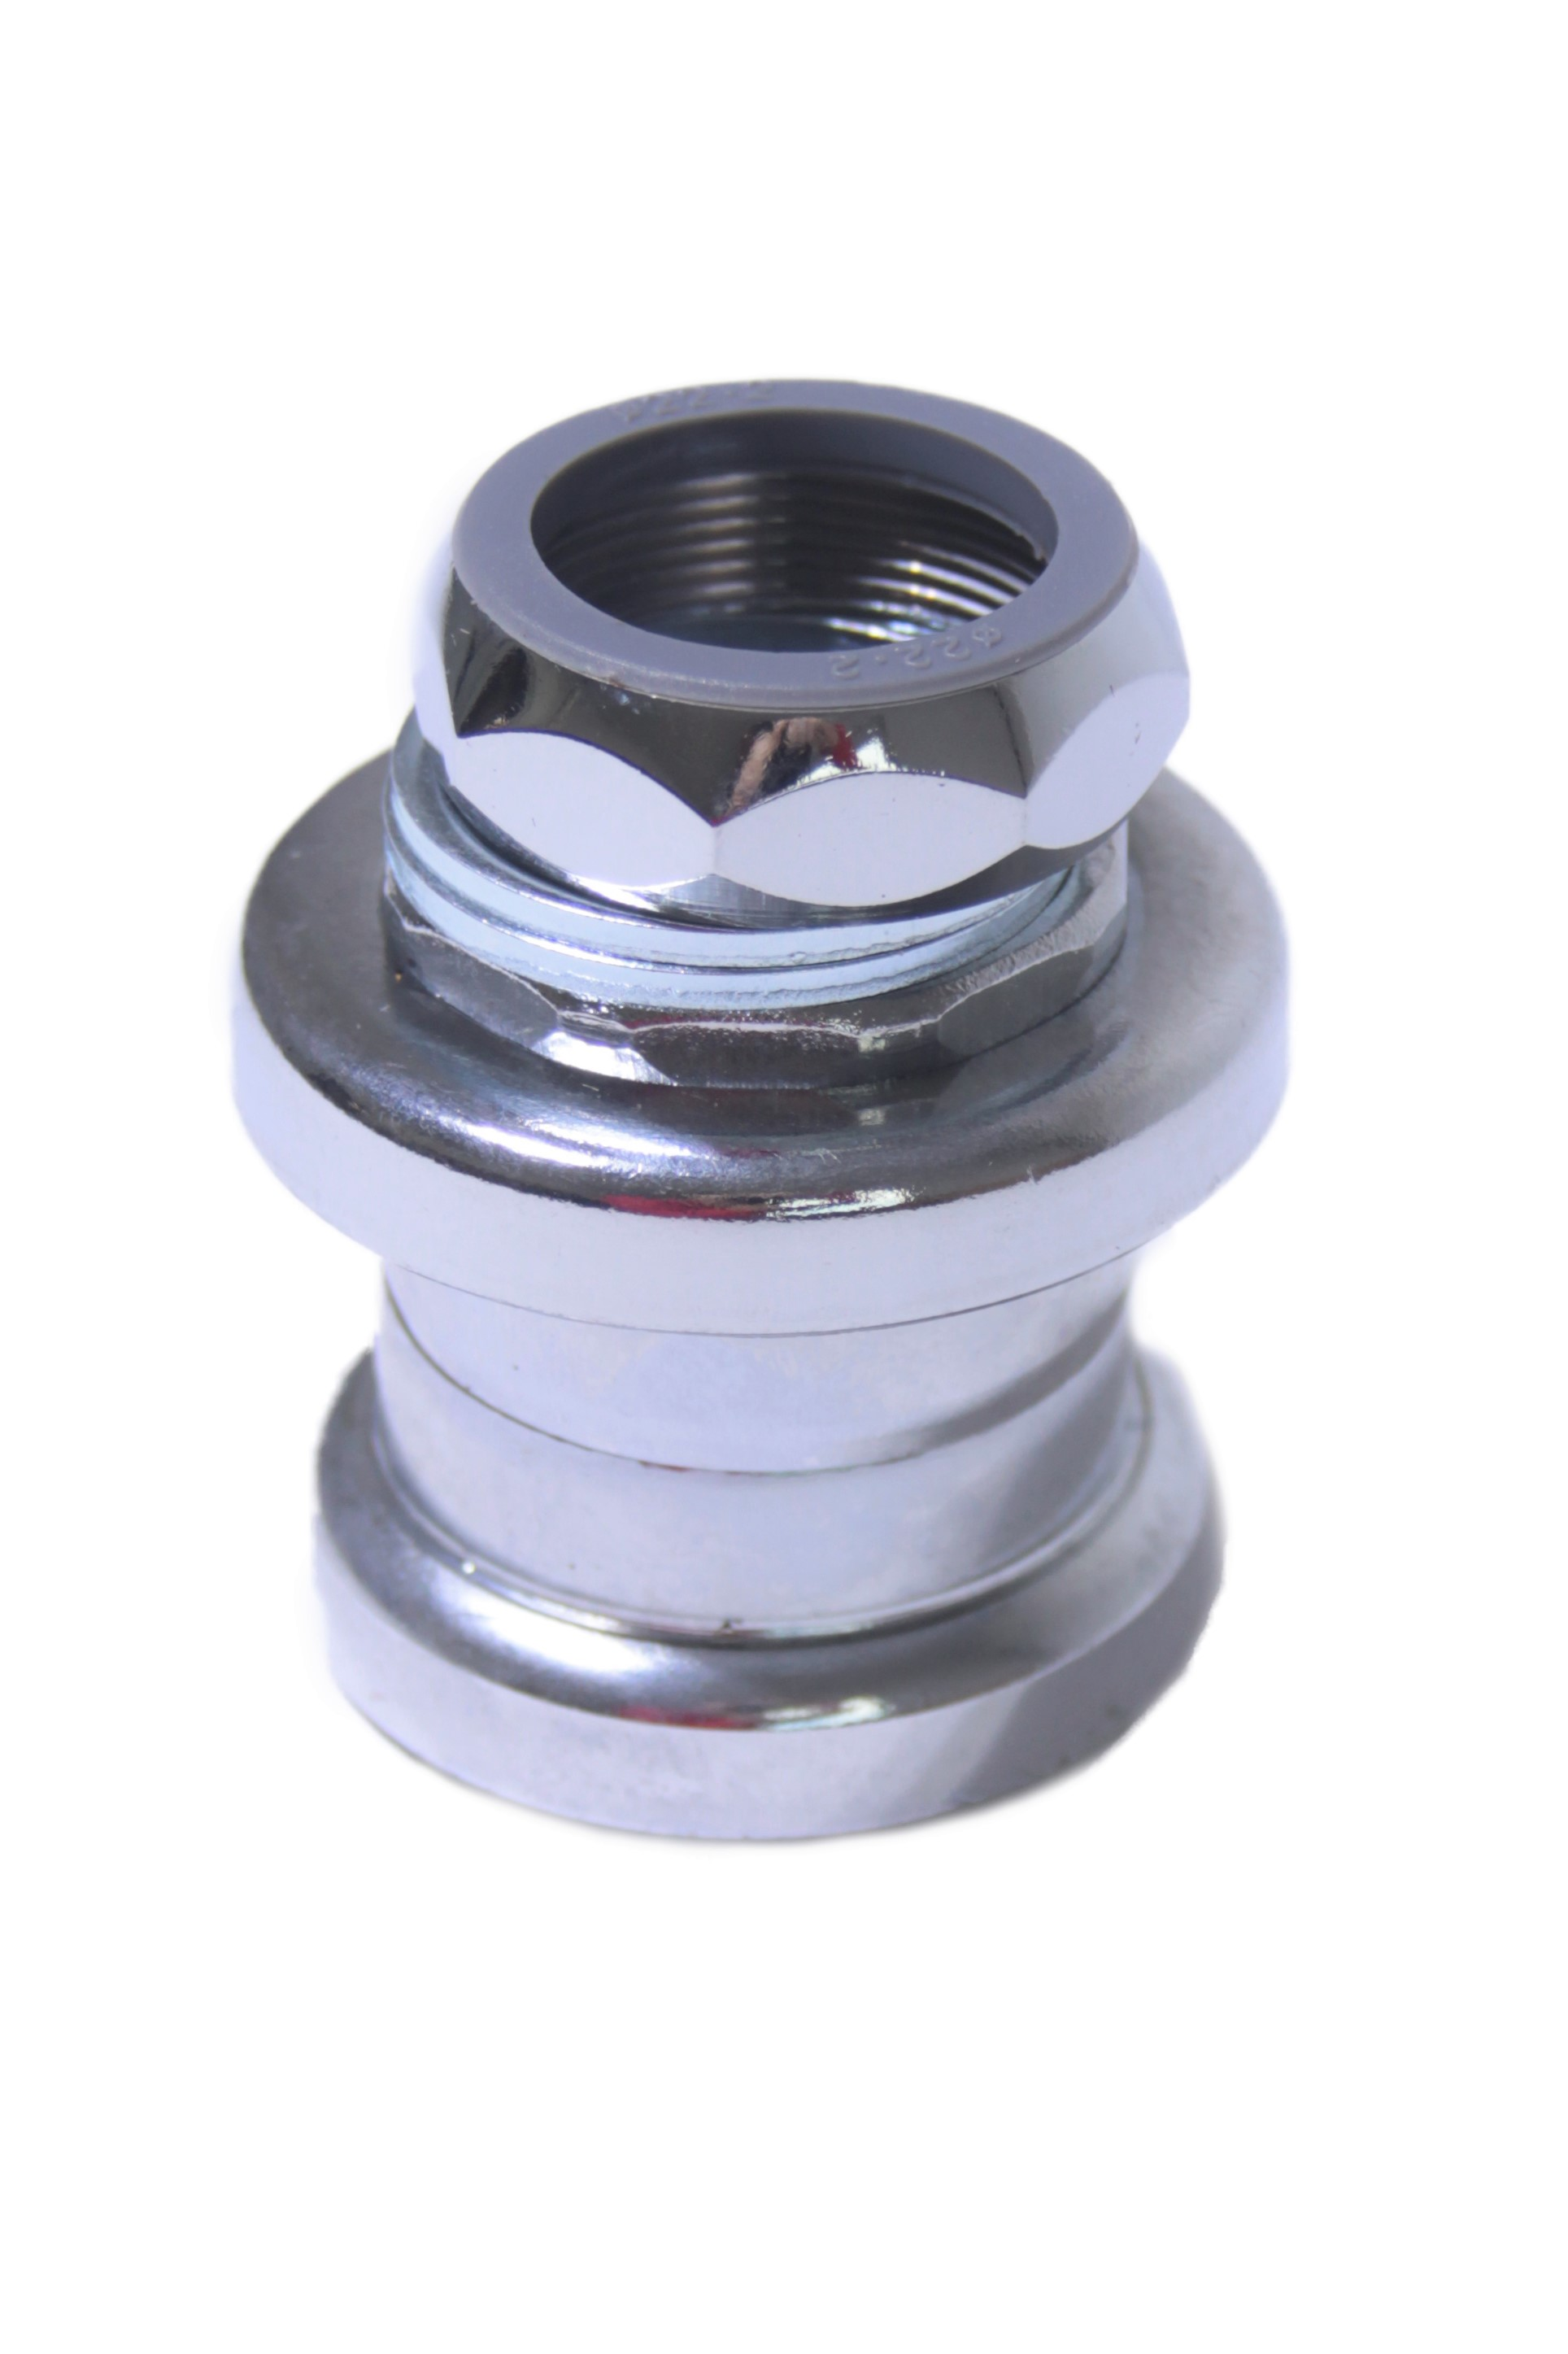 10 x Pipe for 25mm pipe Hula Hoola Hoop barbed connector 21mm